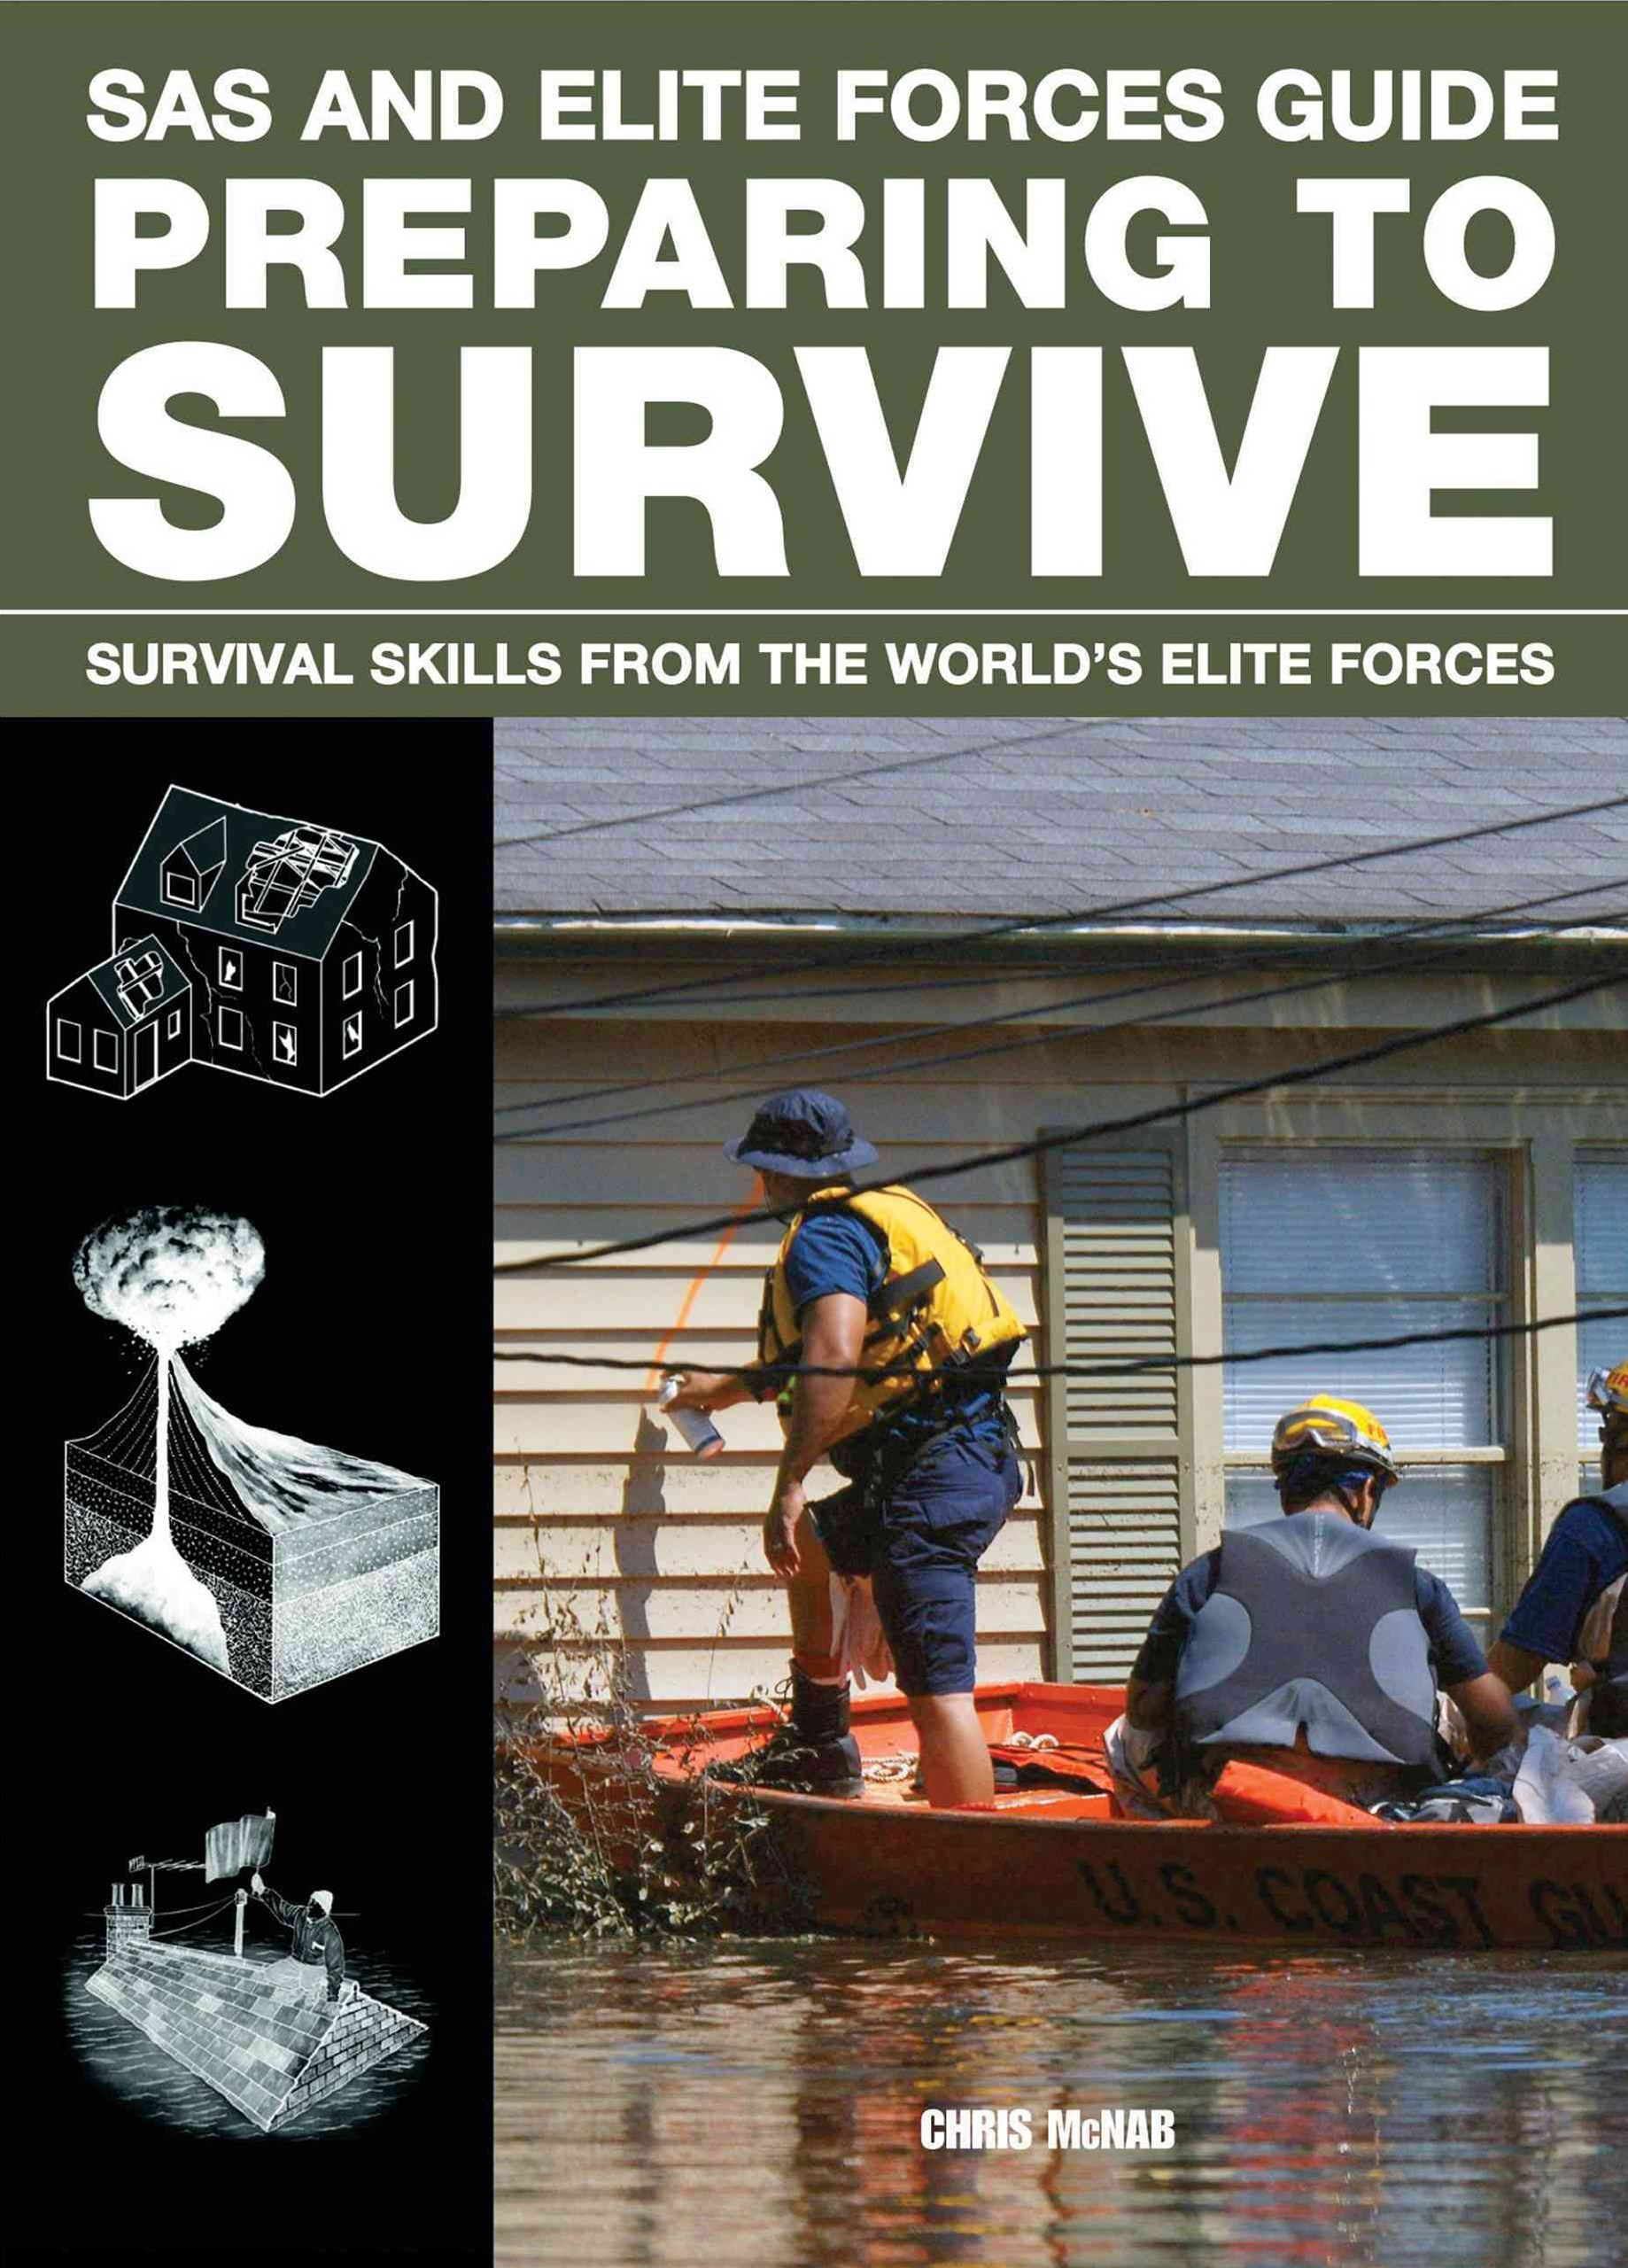 SAS and Elite Forces Guide Preparing to Survive